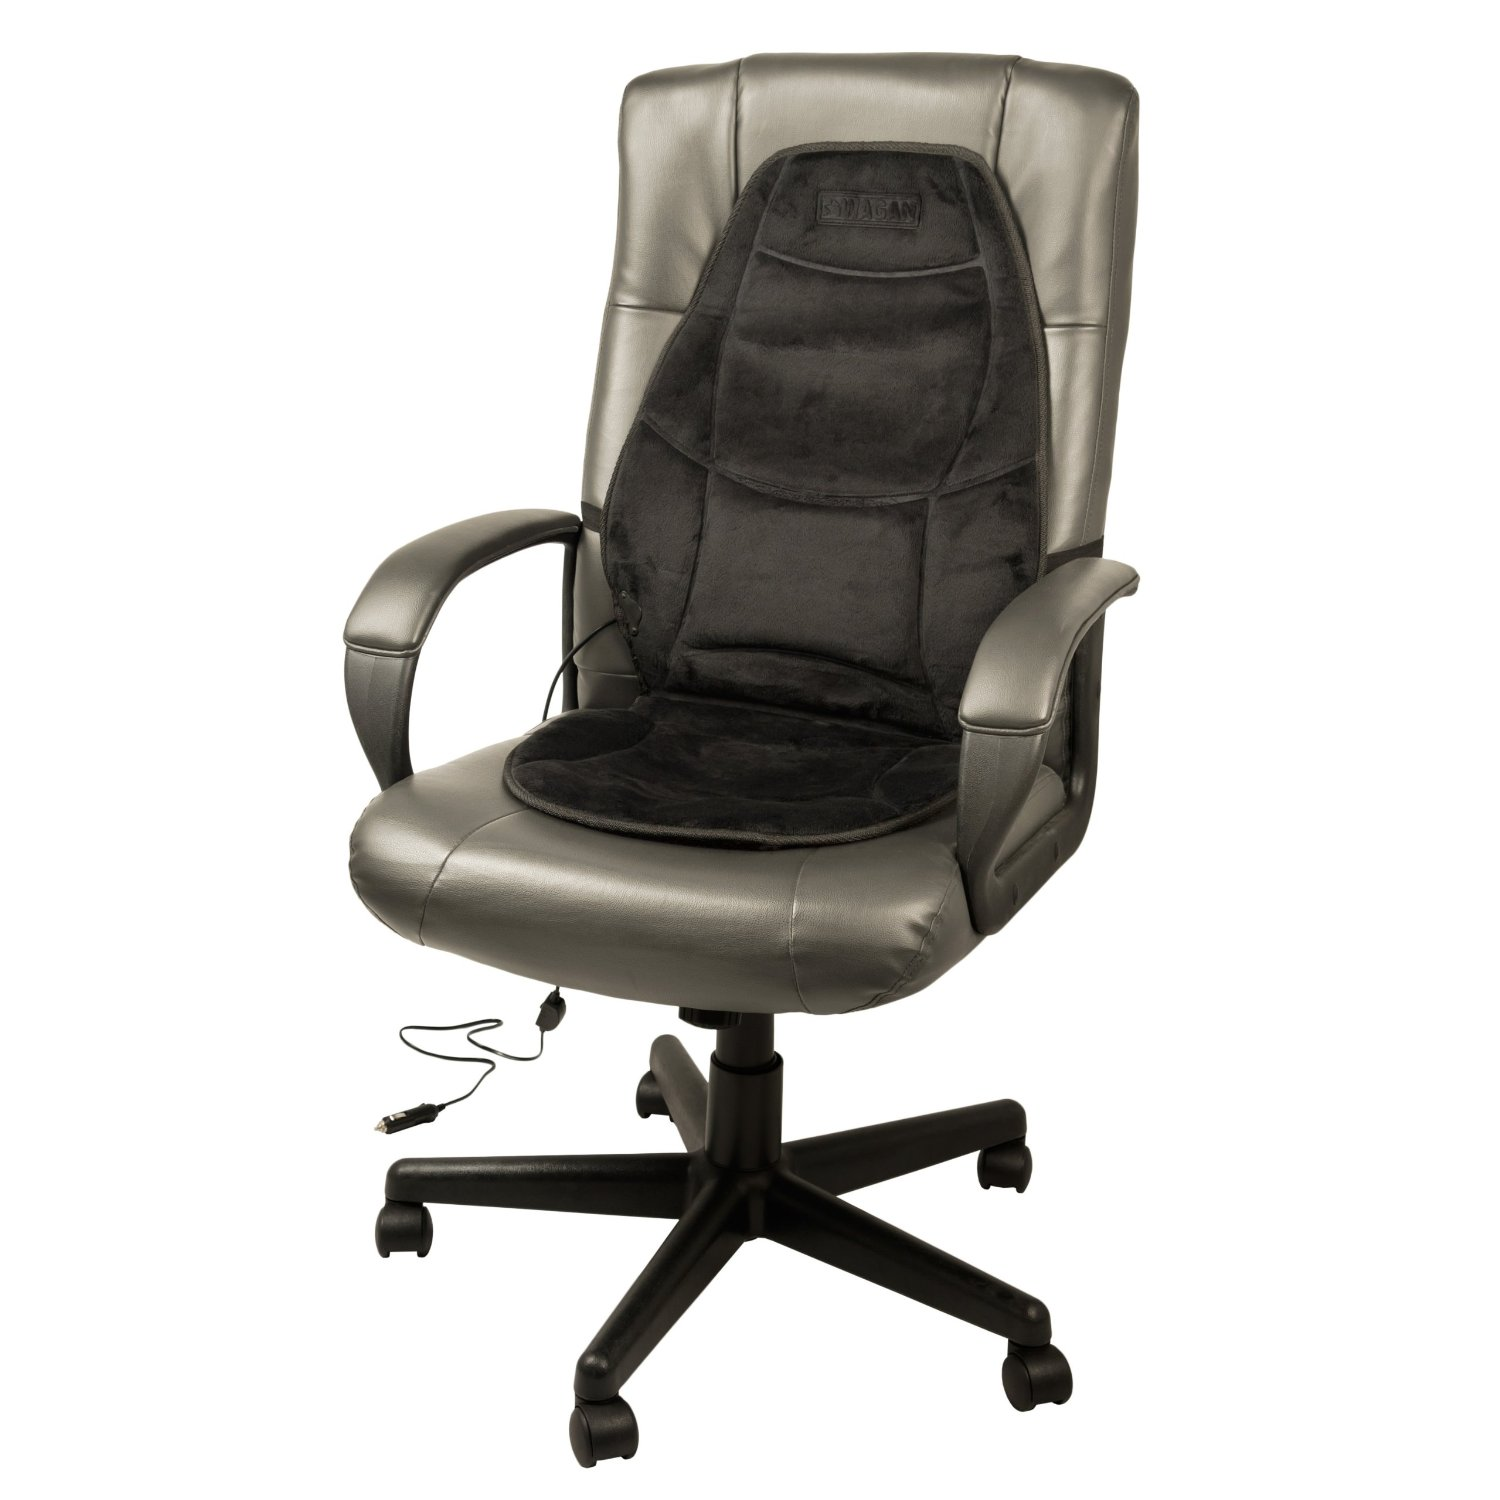 back support cushion heated lumbar support office chair